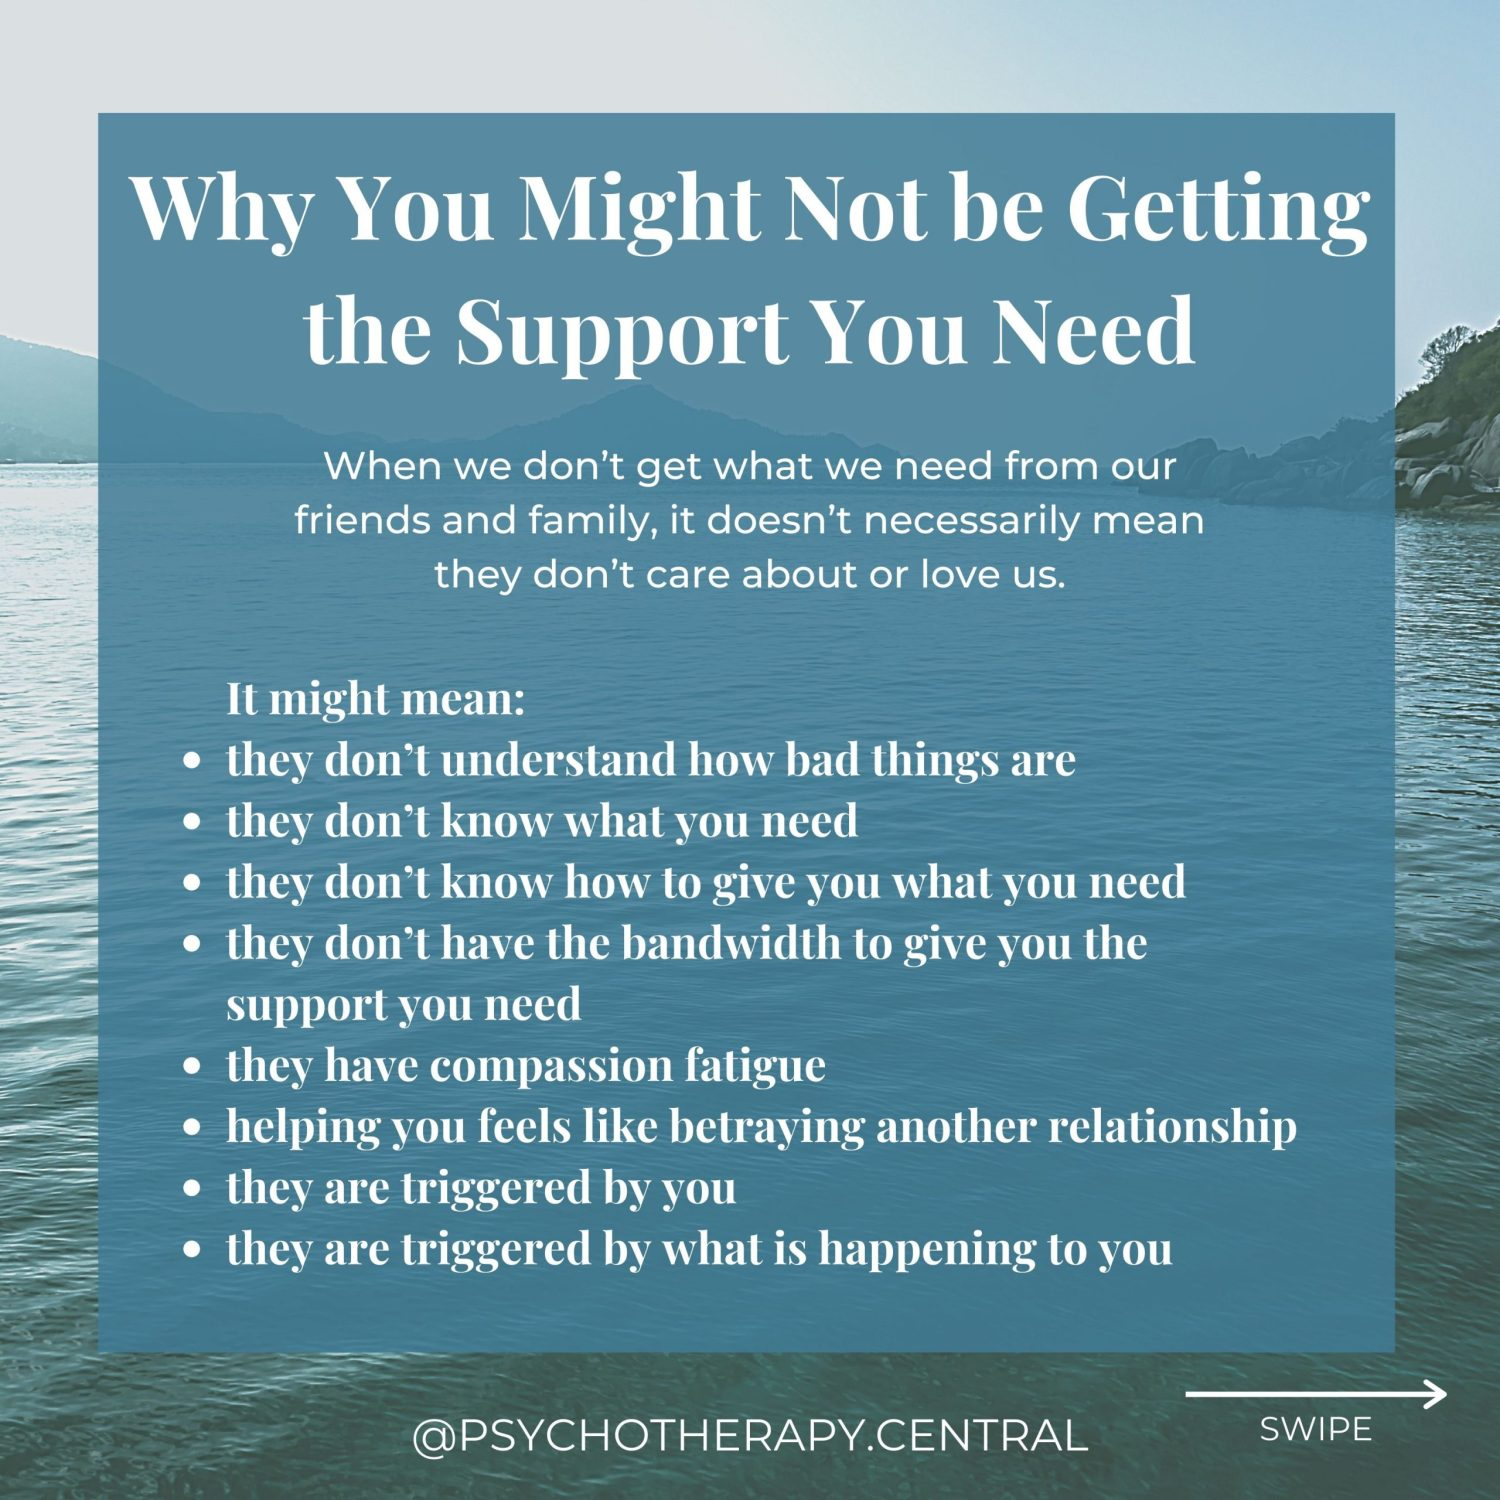 Why You Might Not be Getting the Support You Need